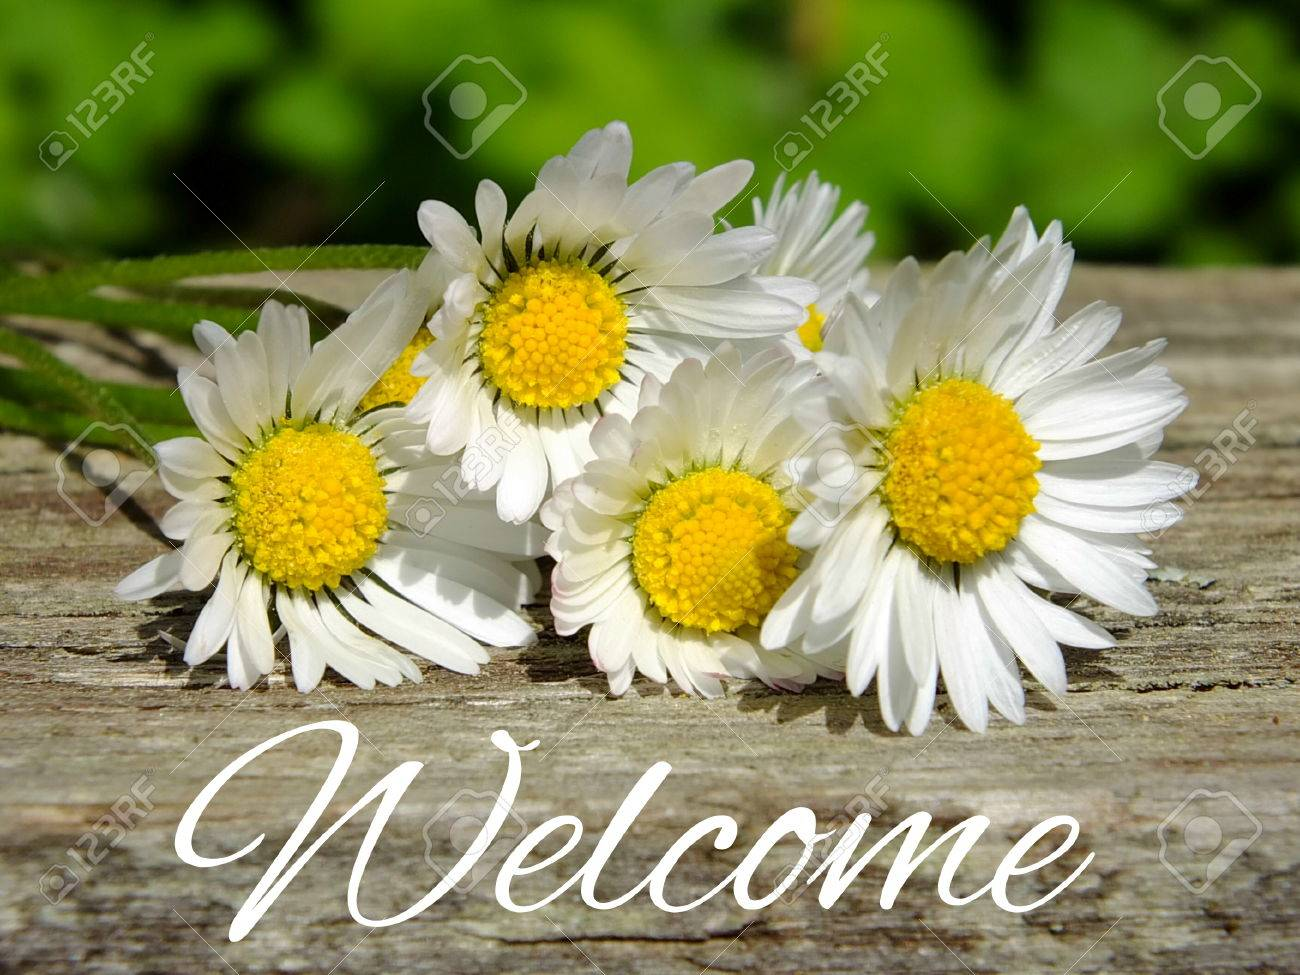 Image of daisies with lettering welcome Standard-Bild - 35059451